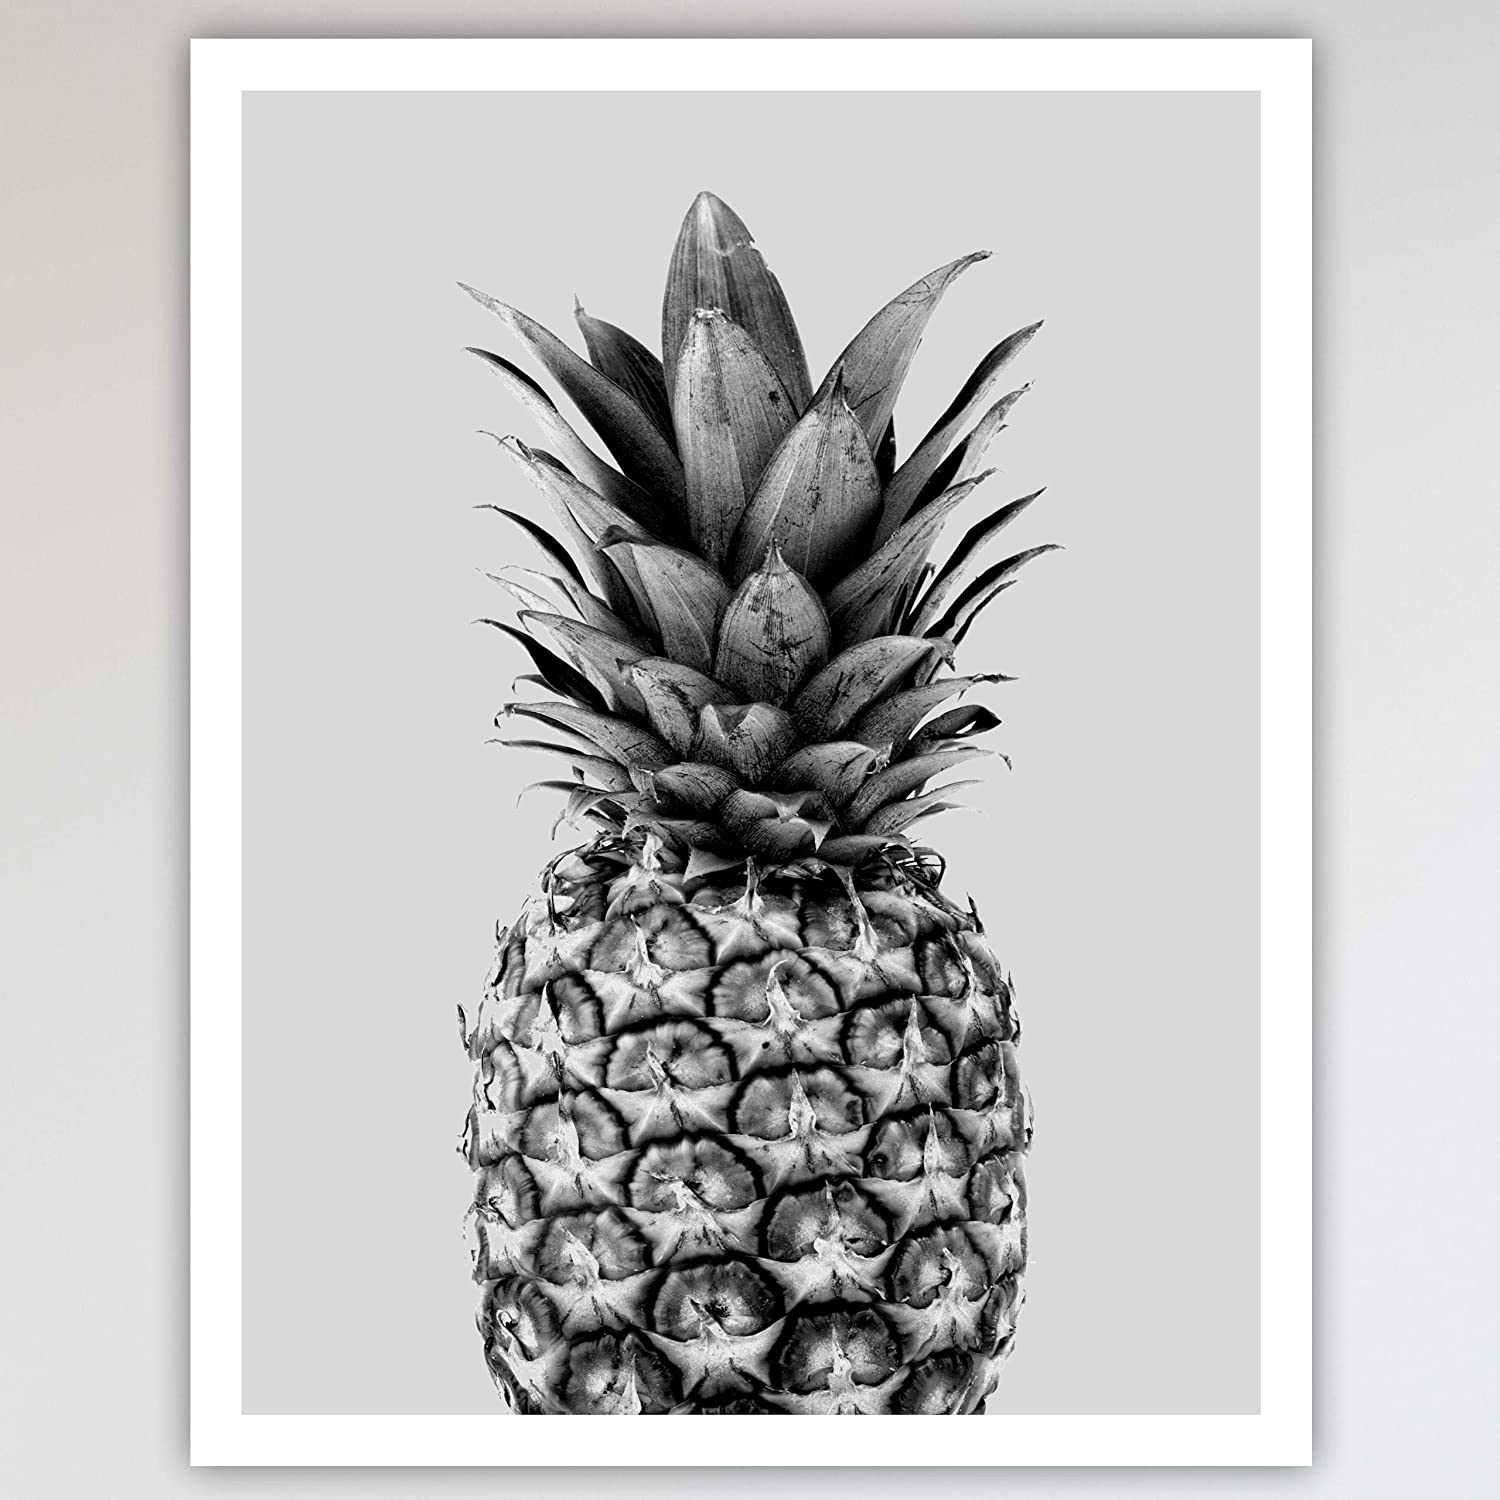 Pineapple black white boho botanical art print poster home wall art for home decor 11x14 inches 27 94 x 35 56 cm unframed amazon ca handmade